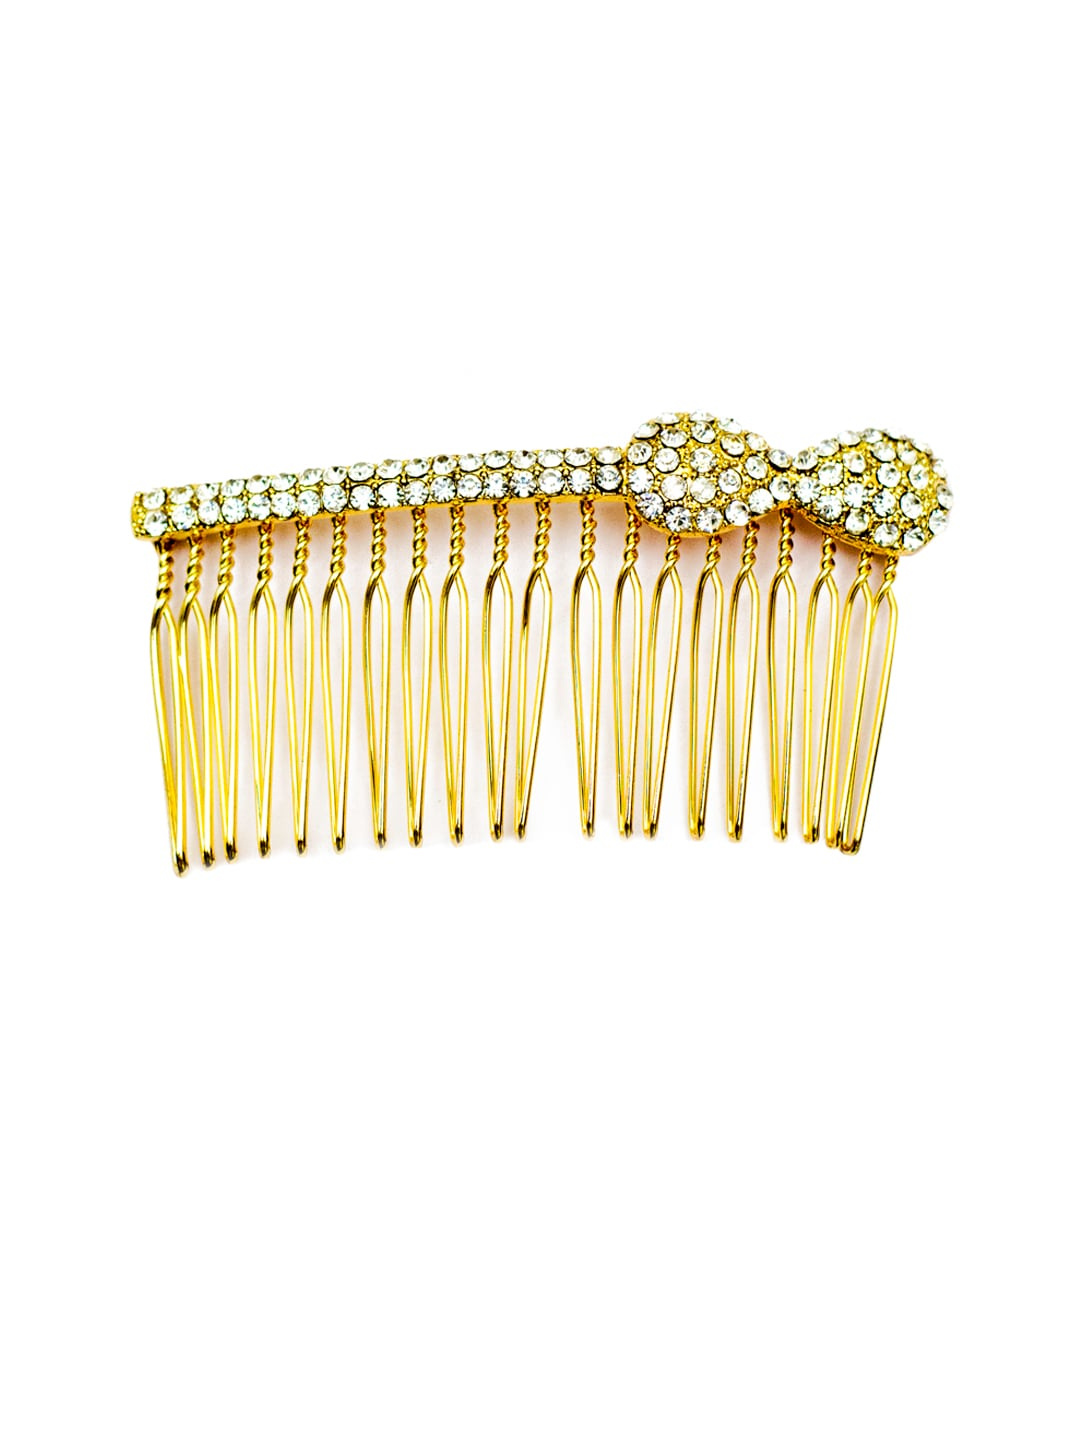 Elite Models (France) Gold Designer Hair Jewellery Comb image